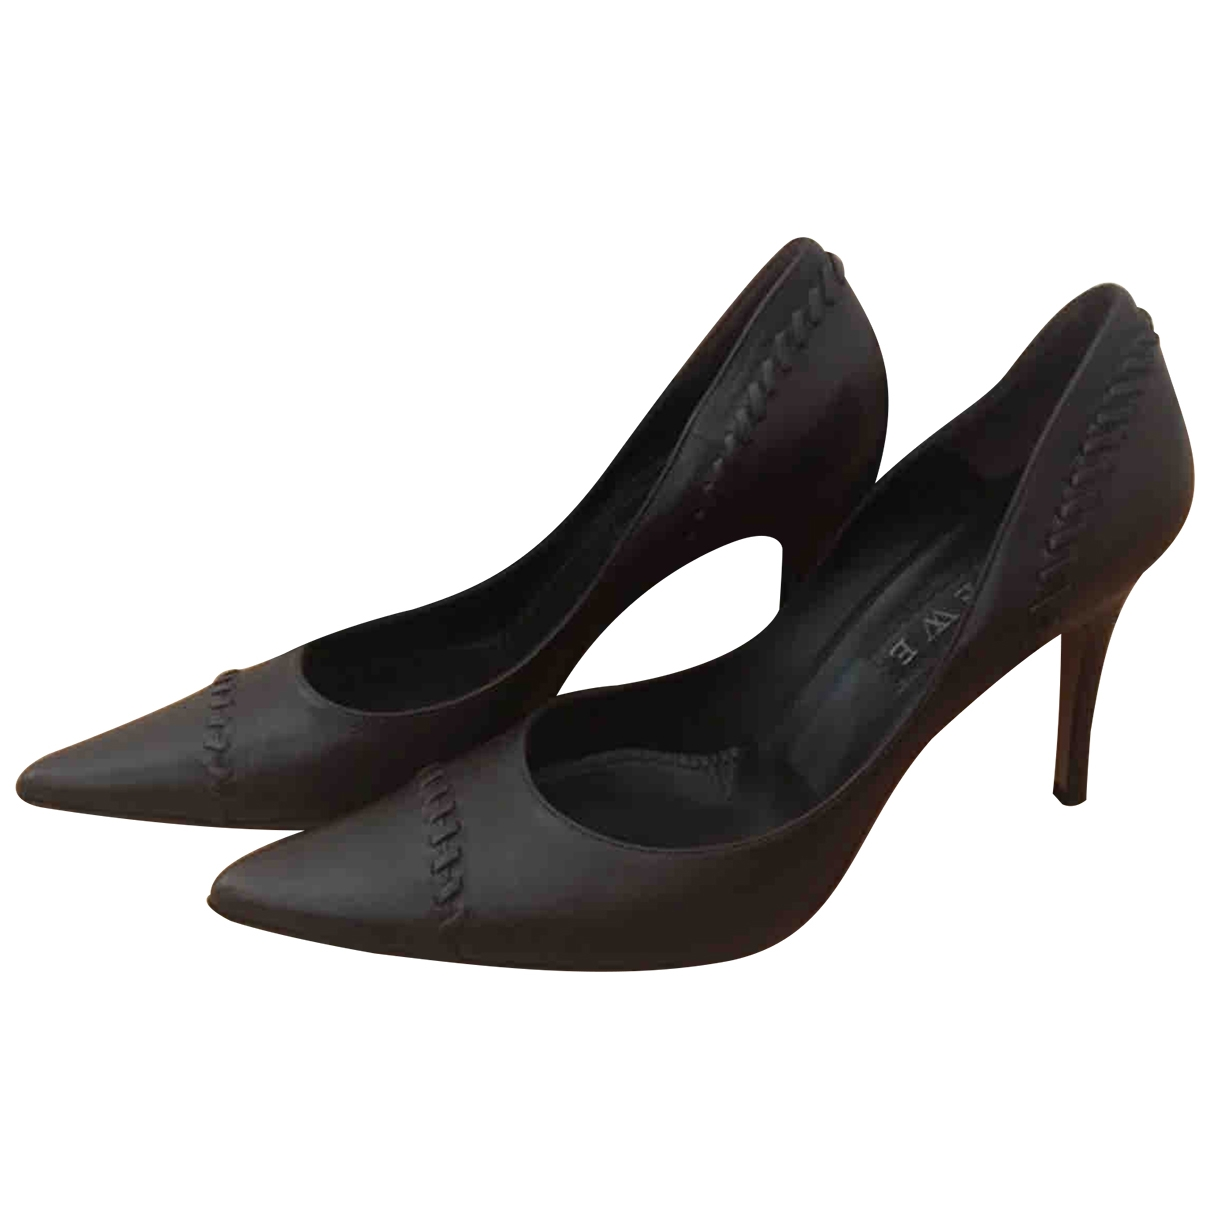 Loewe \N Brown Leather Heels for Women 40 EU